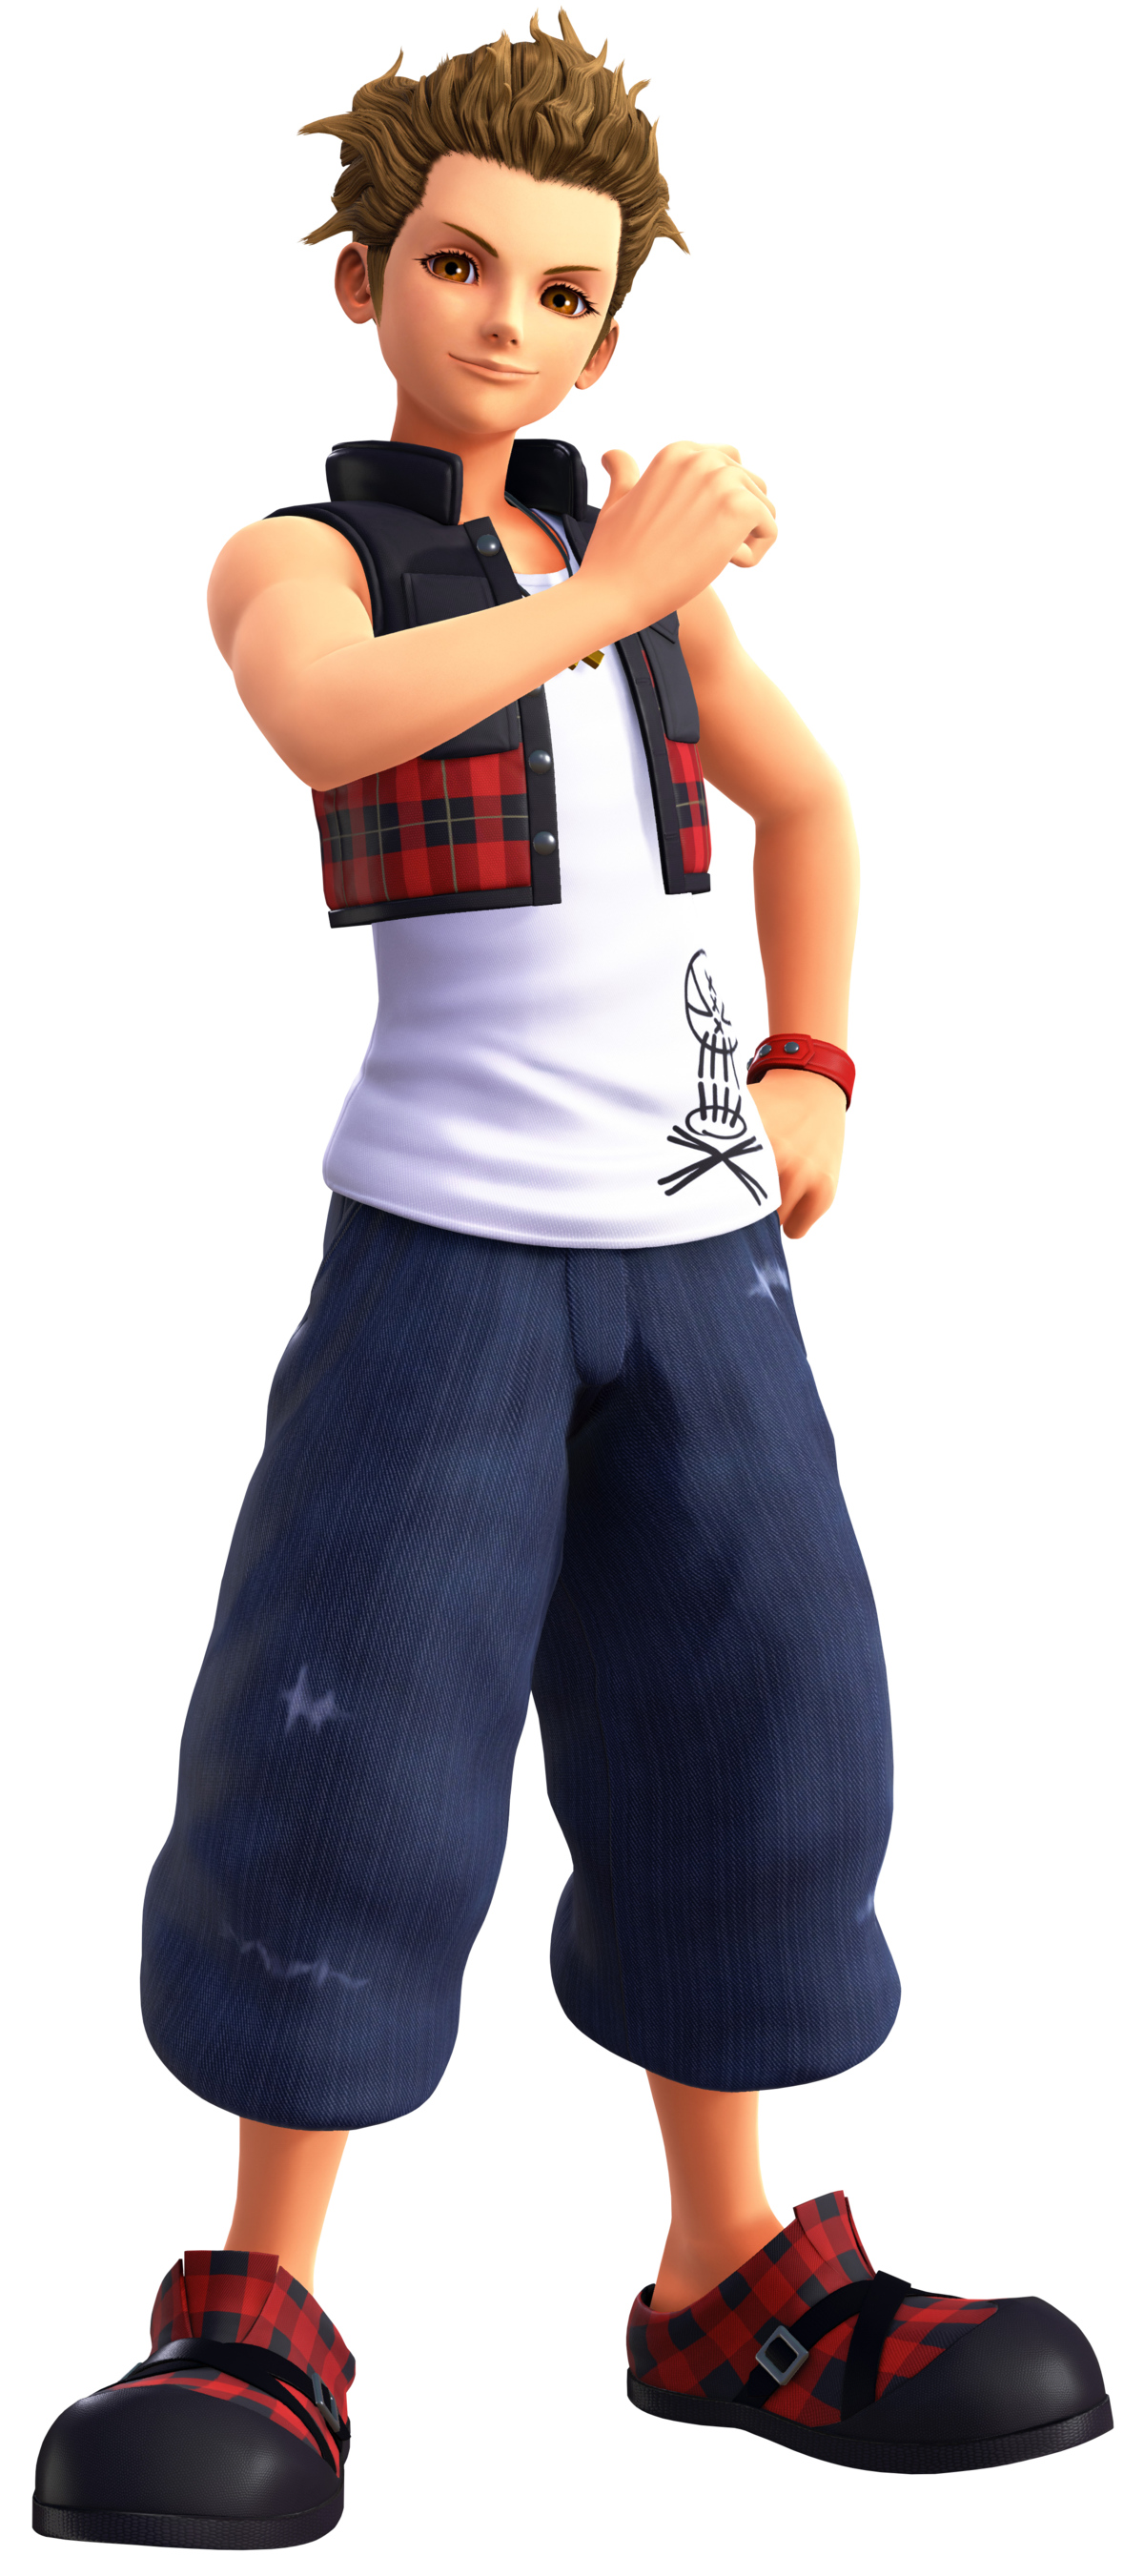 Kingdom Hearts Olette Hayner - Kingdo...